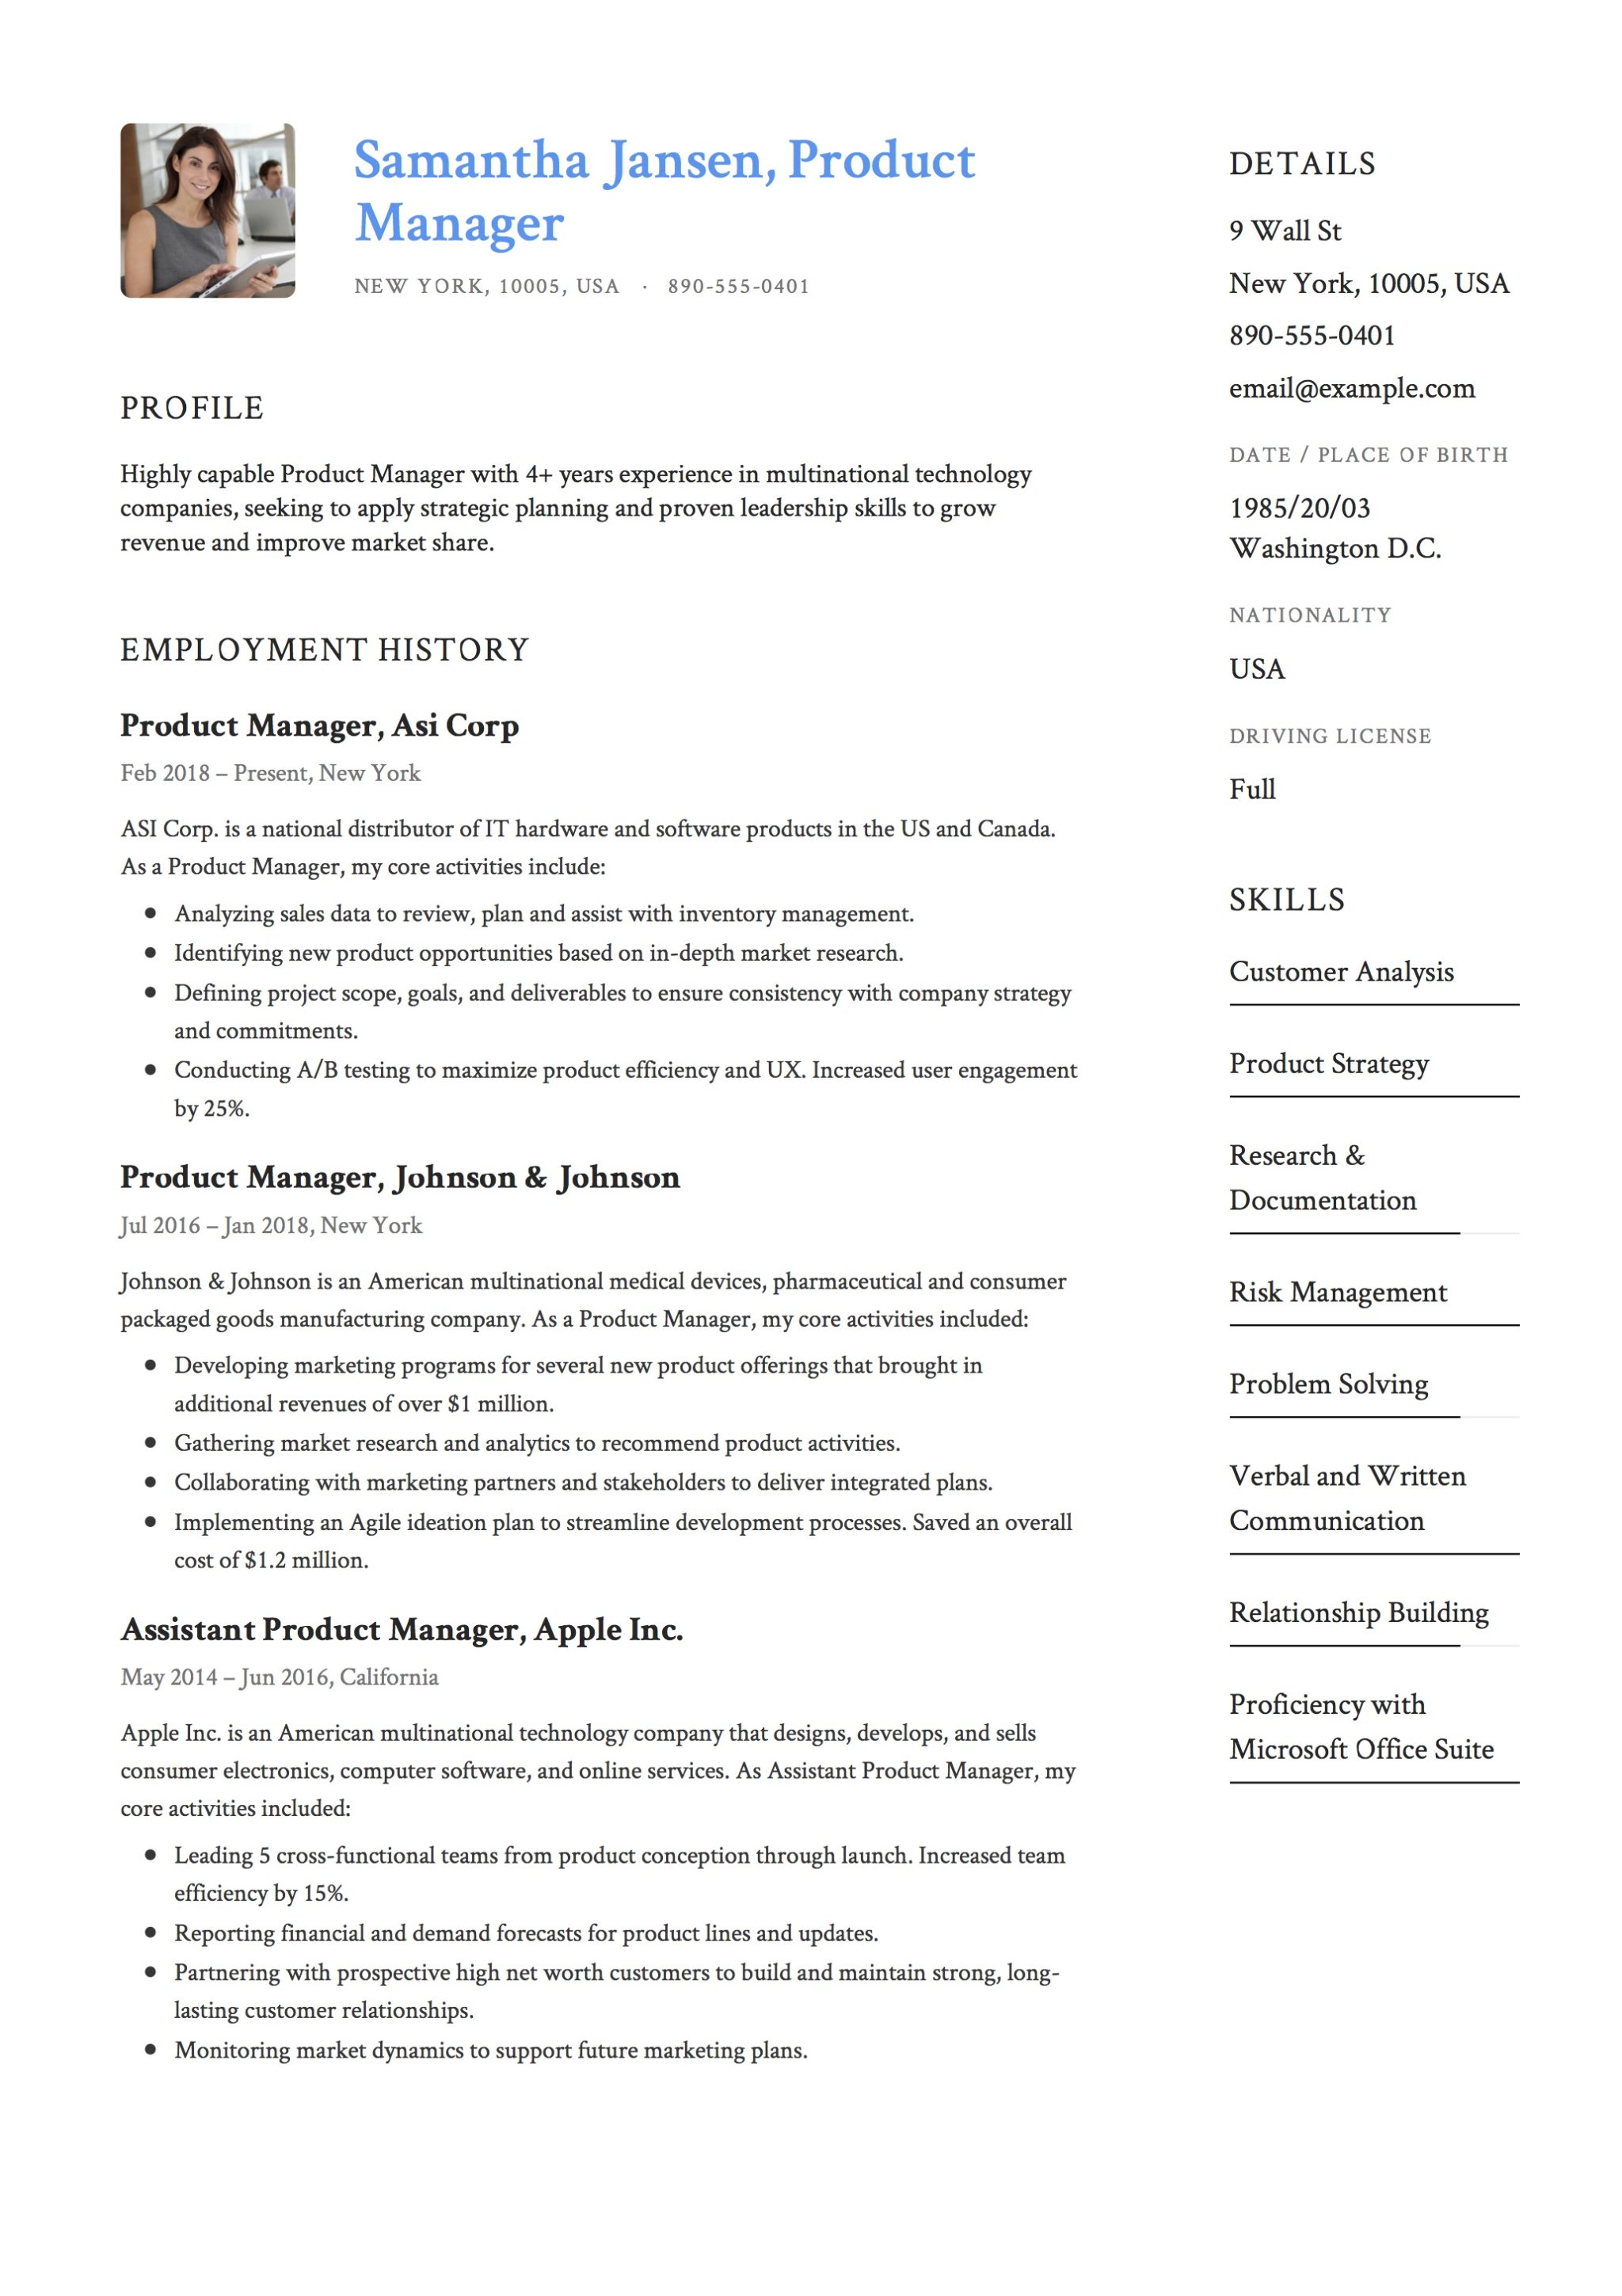 Sample Resume - Product Manager